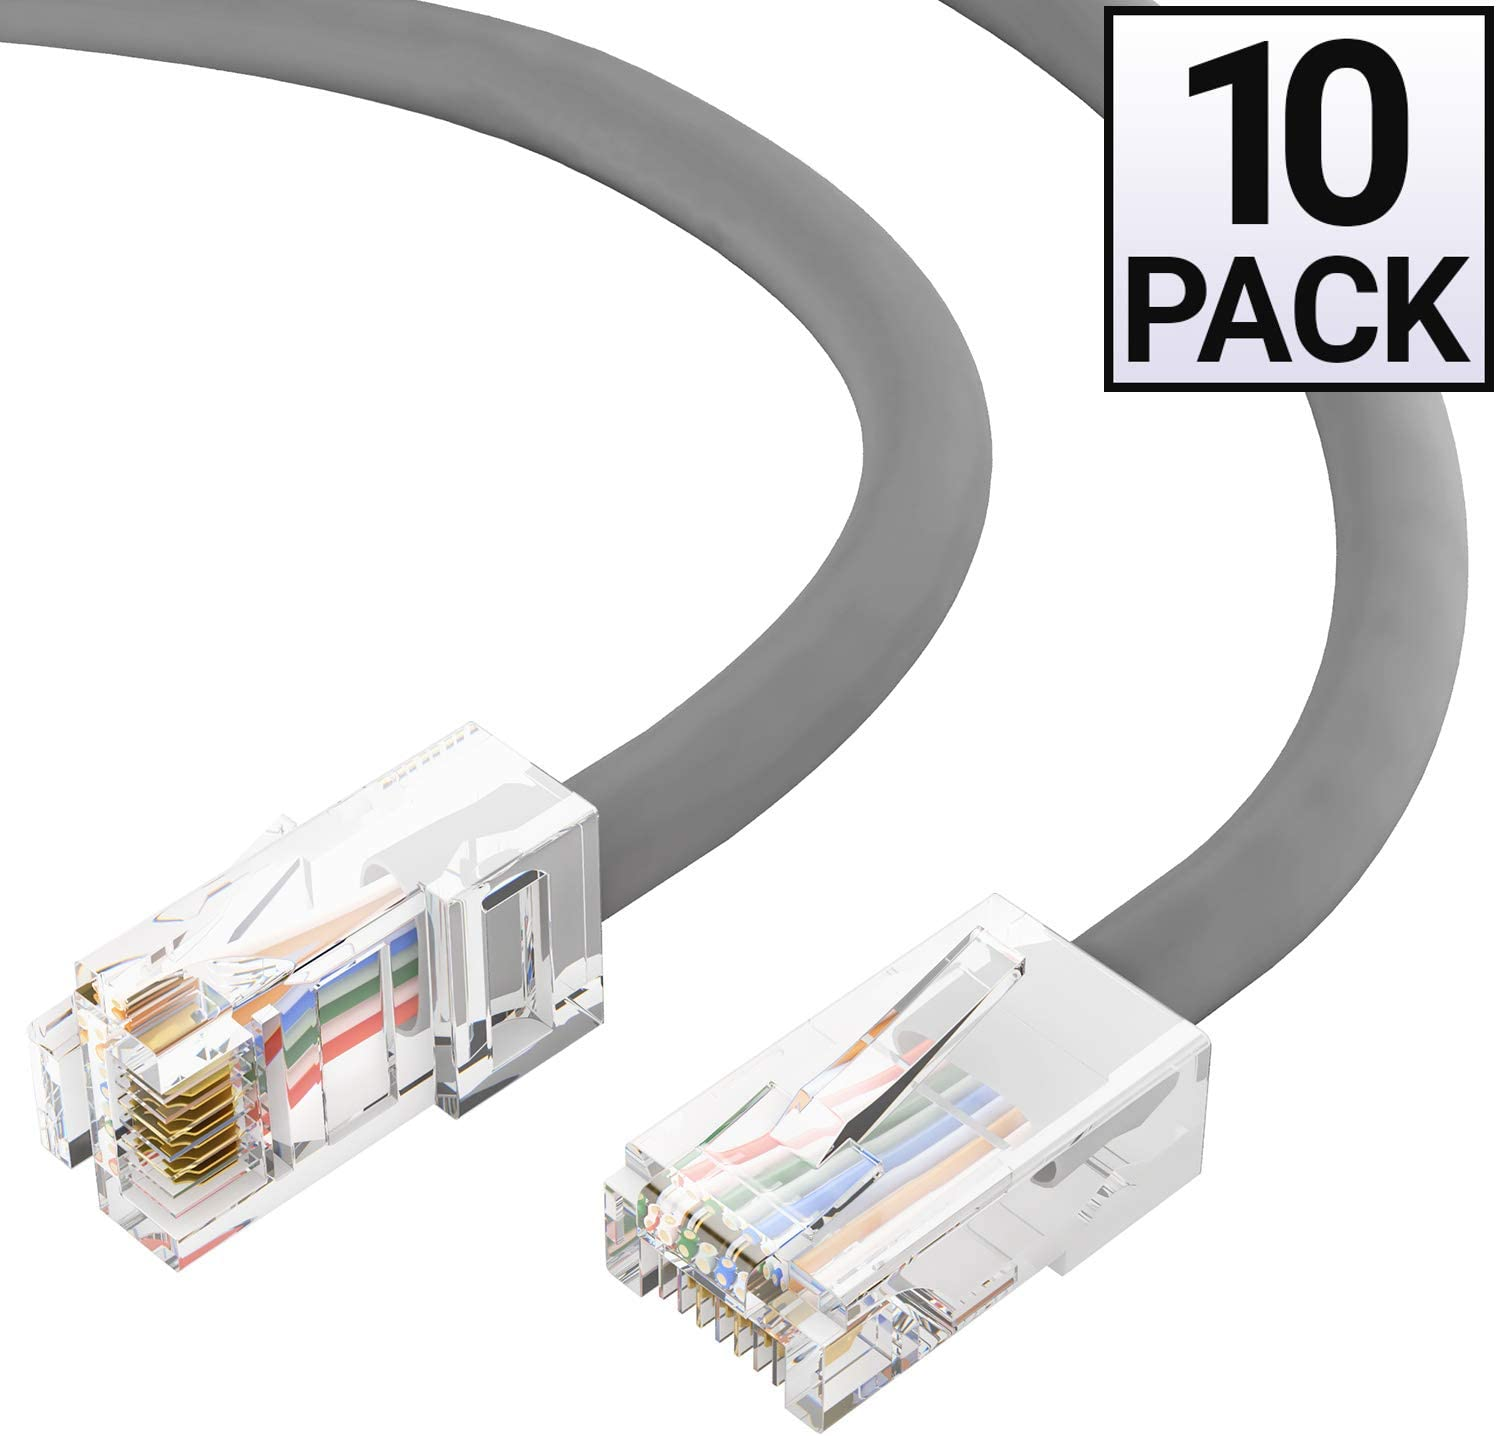 GOWOS 5-Pack CMP Cat5e Plenum Ethernet Cable Computer Network Cable with Bootless Connector Available in 28 Lengths and 10 Colors RJ45 10Gbps High Speed LAN Internet Cord 5 Feet - Gray